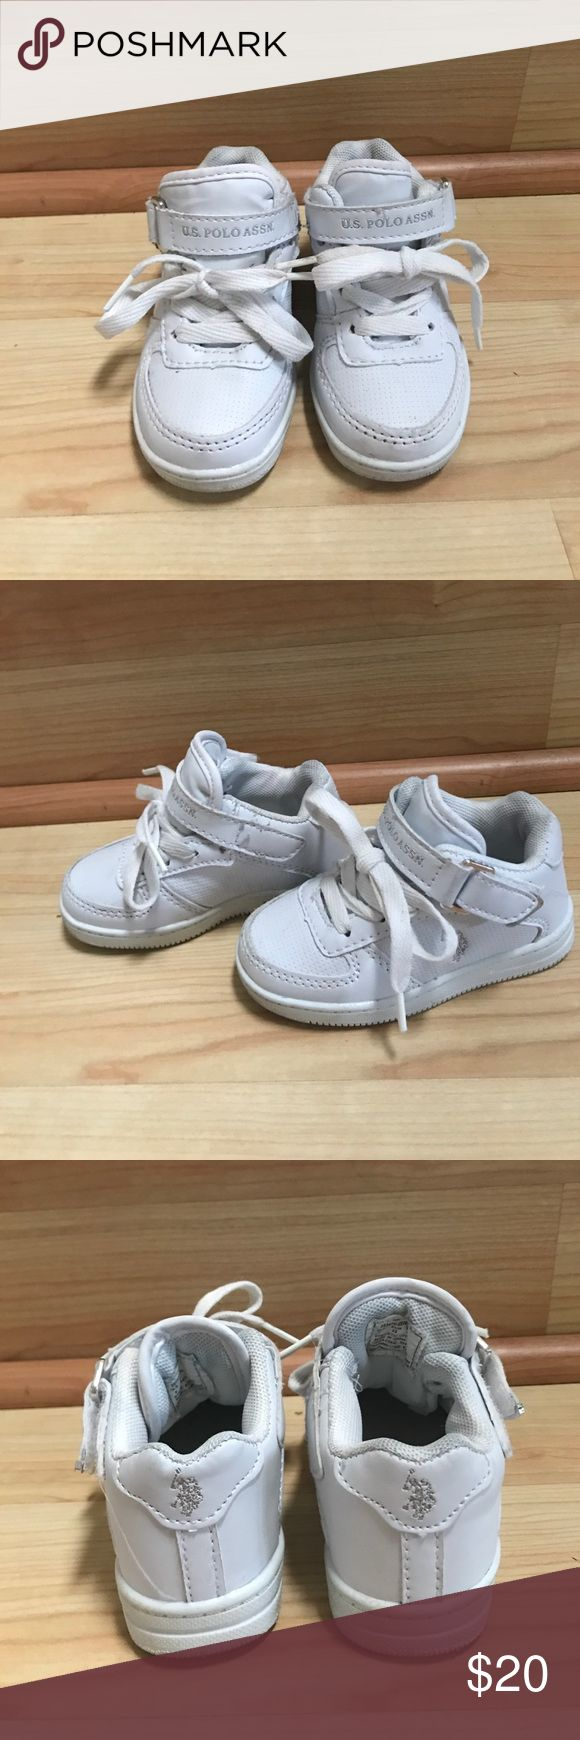 Polo shoes Size 7 toddler polo shoes- like new!! U.S. Polo Assn. Shoes Sneakers